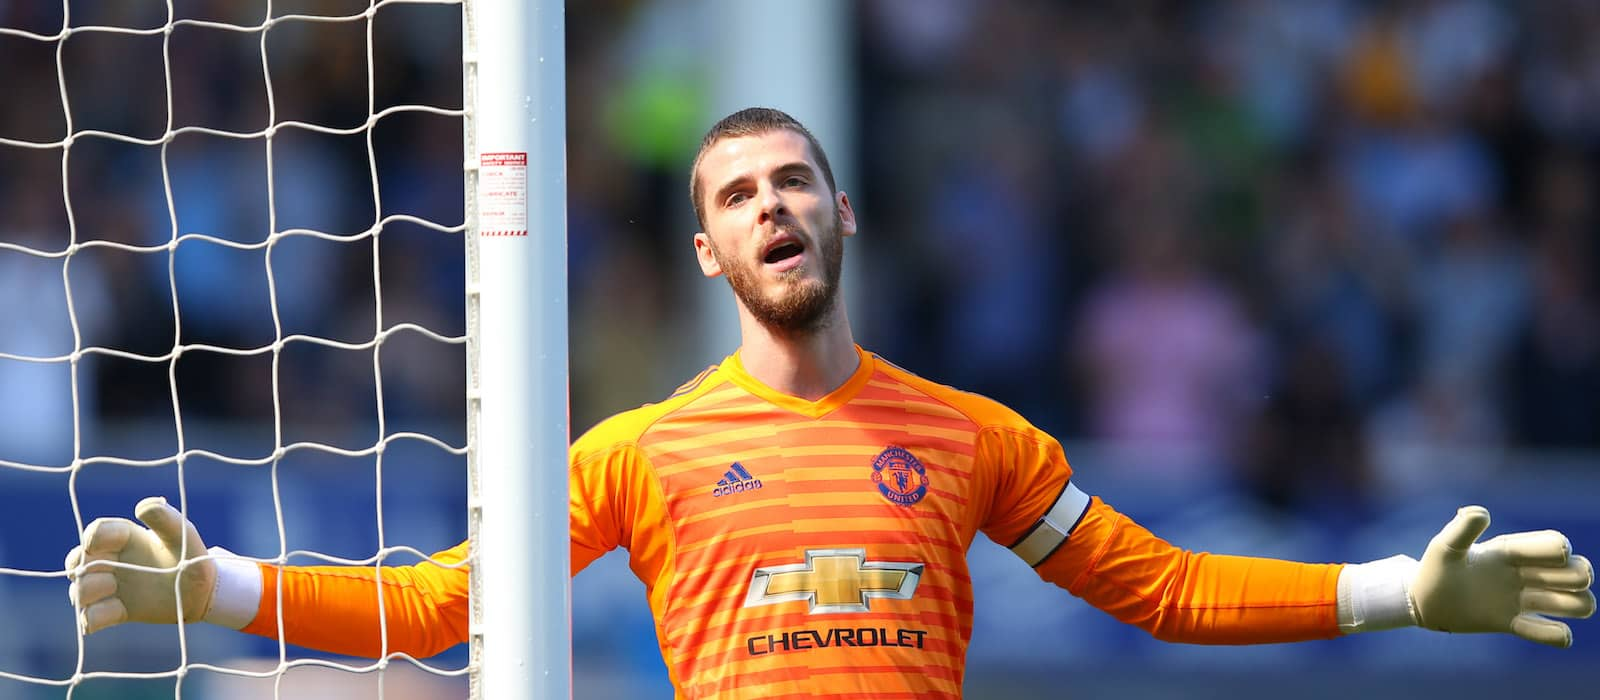 Manchester United 'confident' David de Gea is ready to sign new contract – report